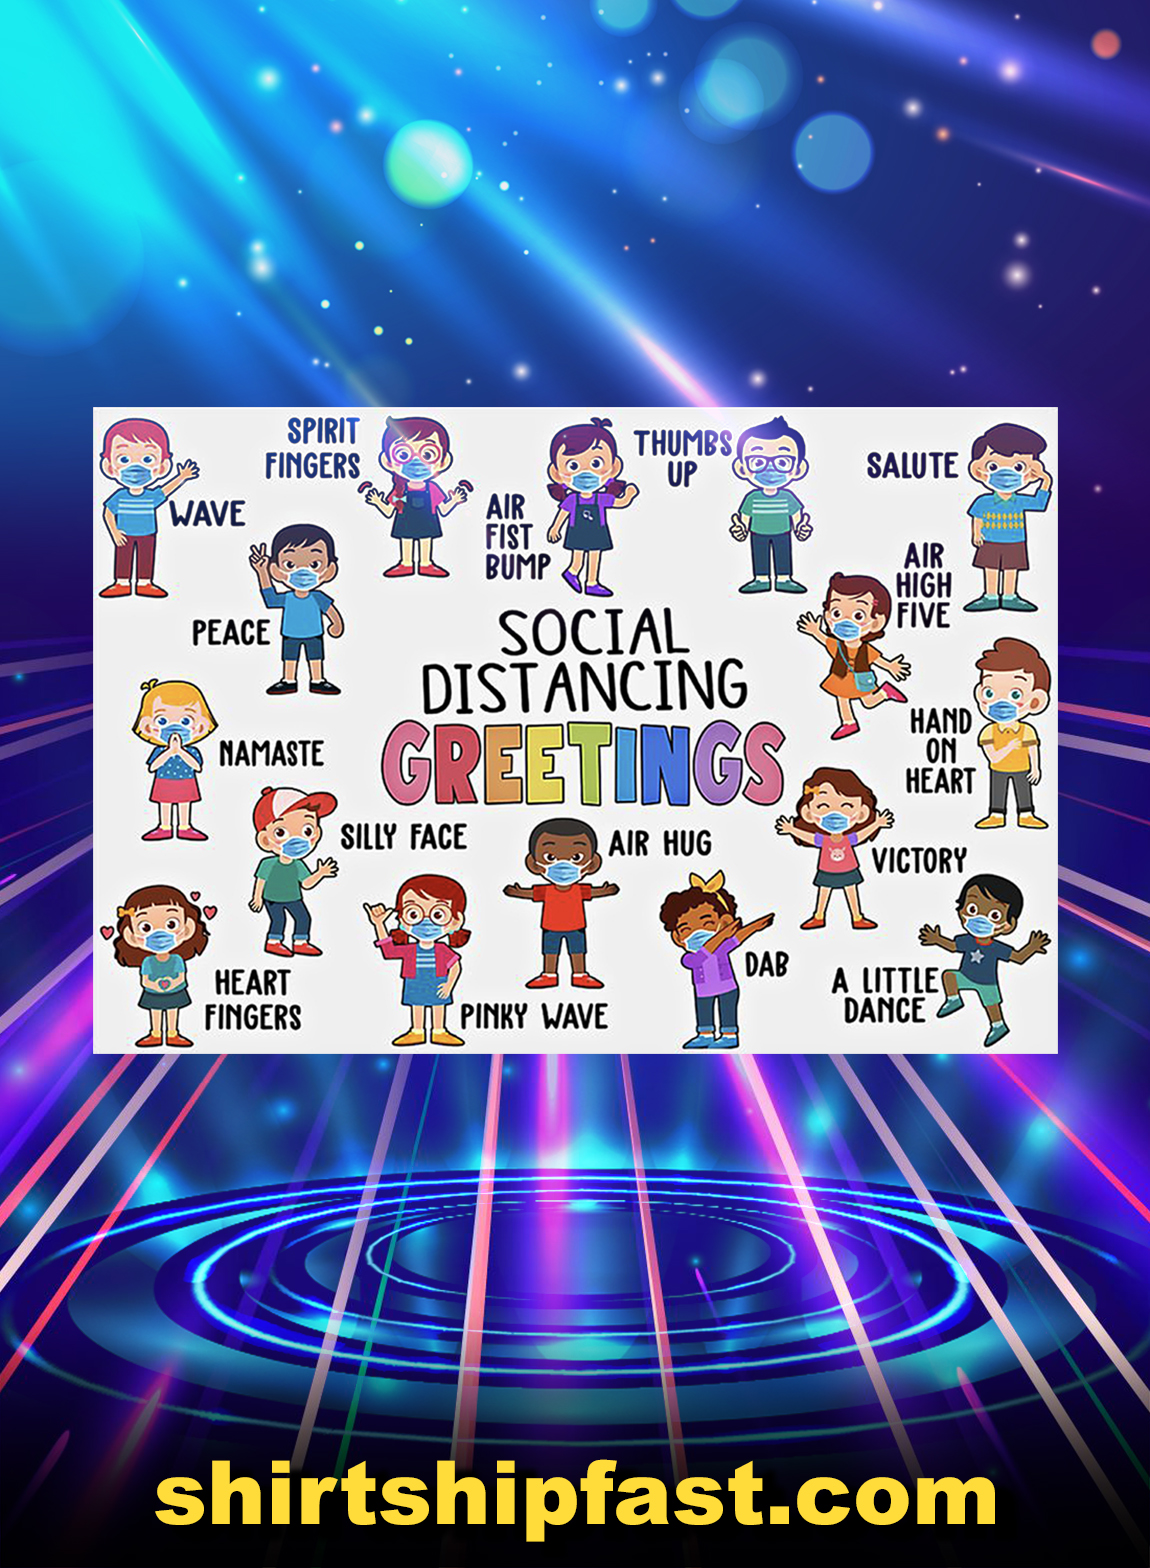 Classroom social distancing greetings poster - A3